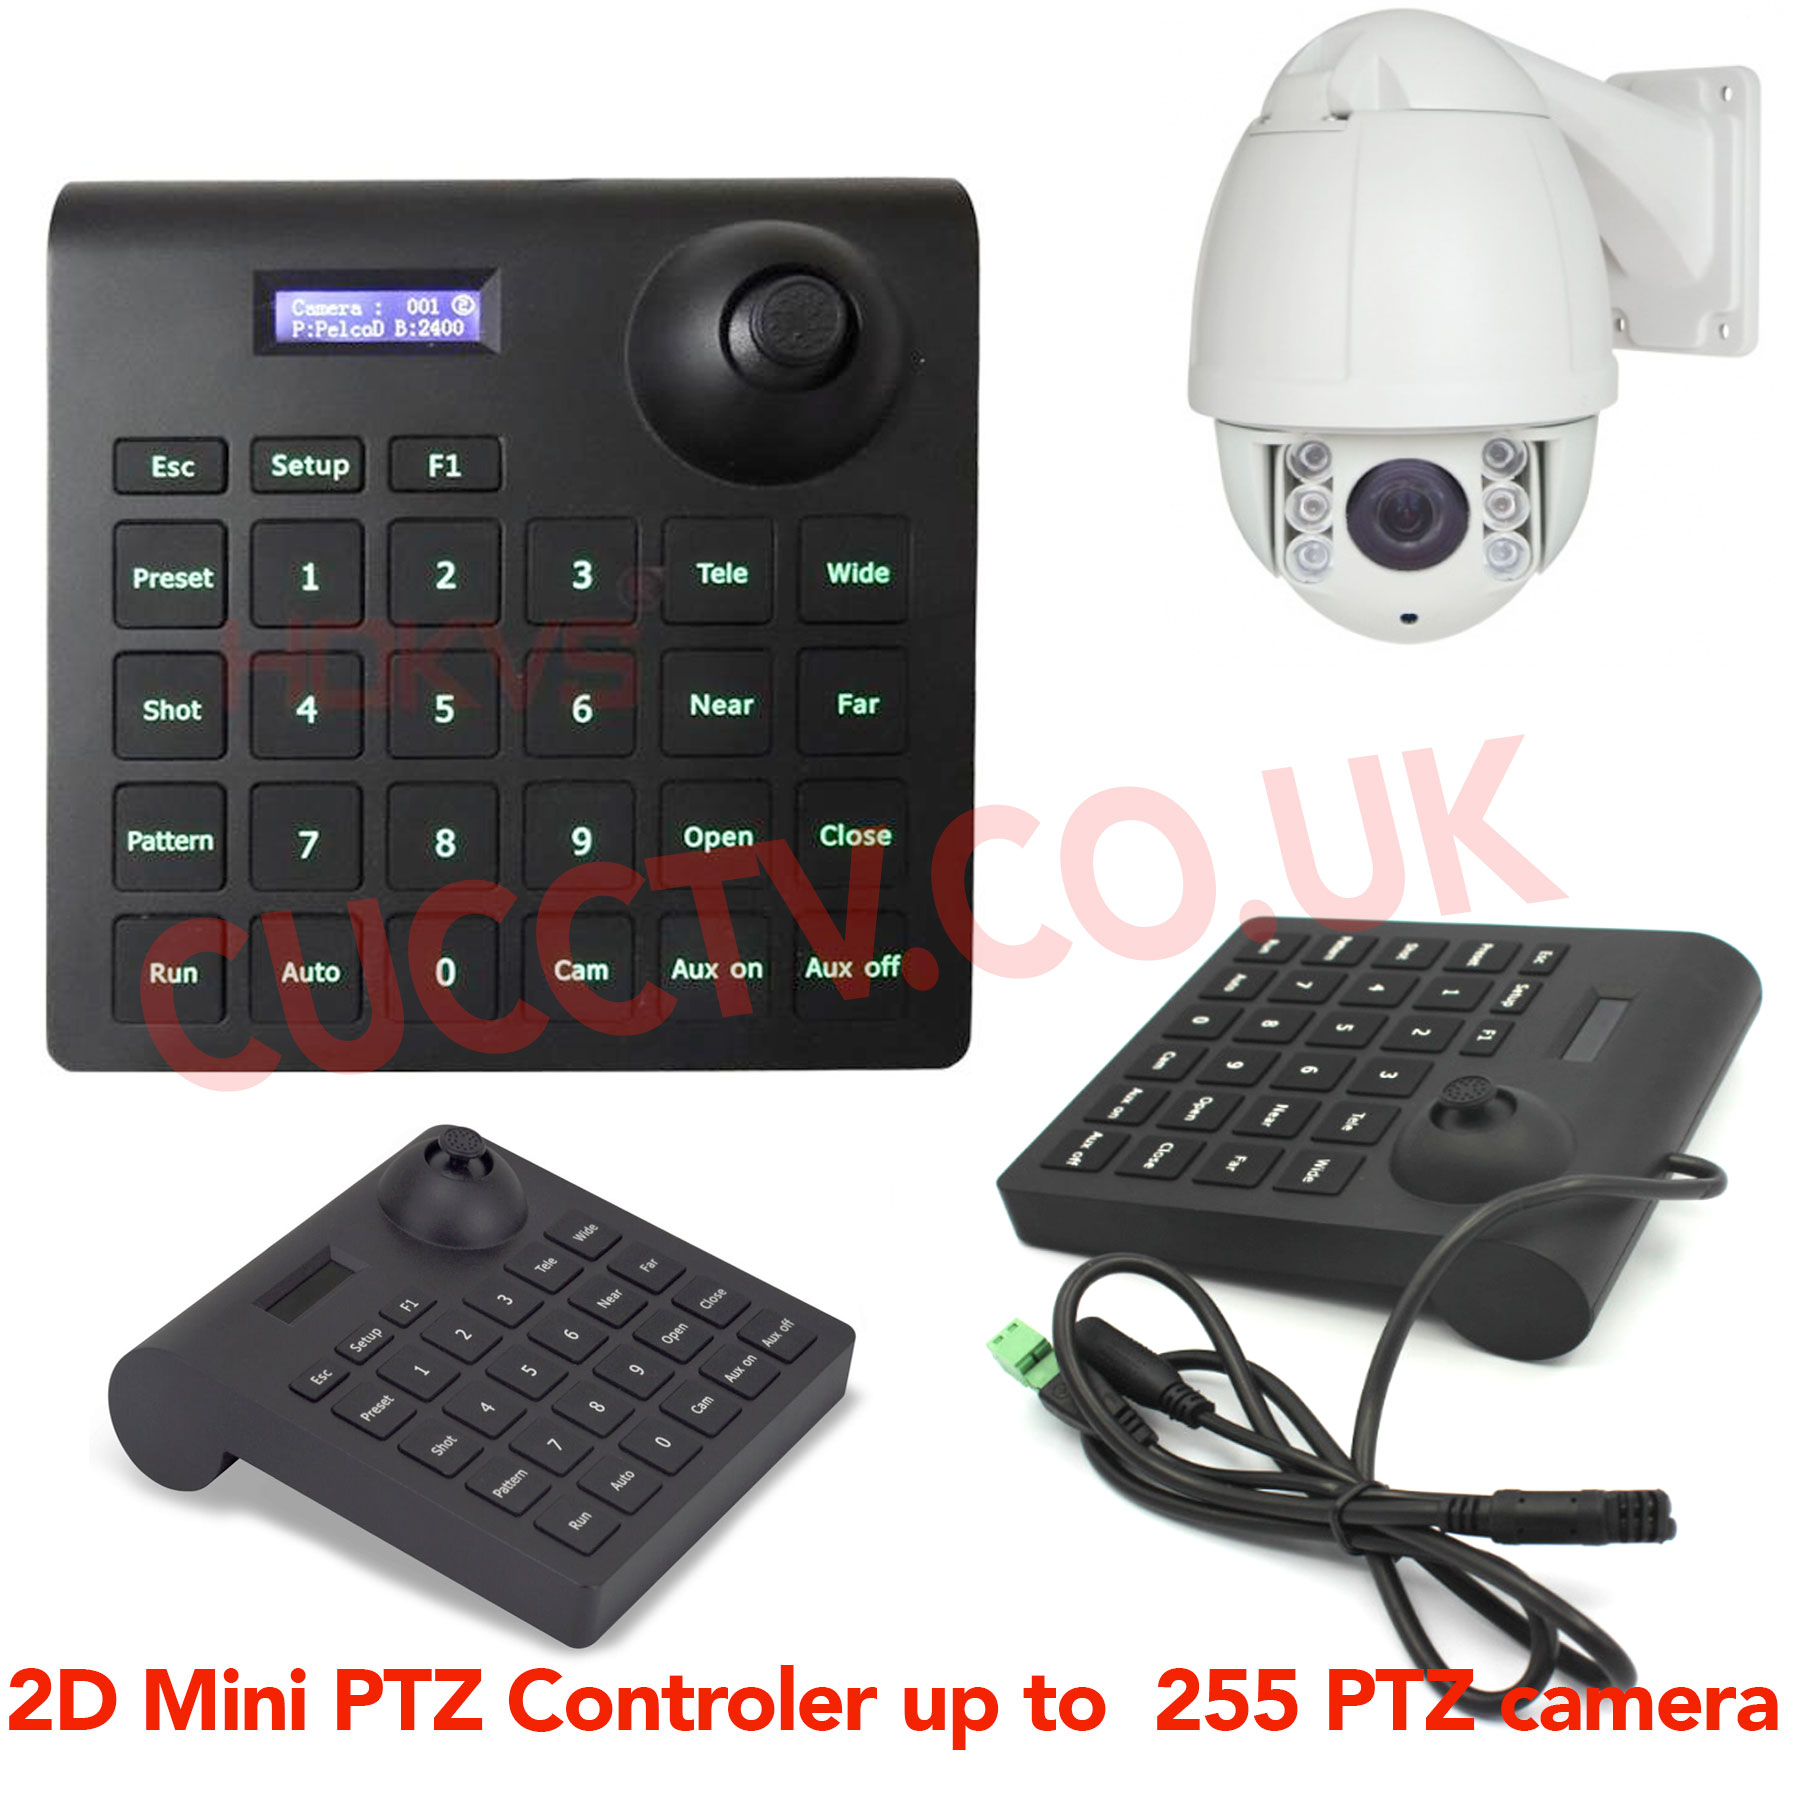 Portable Mini Small 2d Ptz Keyboard Controller Joystick Support Pelco Rs485 Wiring Diagram D P Hikvision And Dahua Protocol High Speed Dome Camera